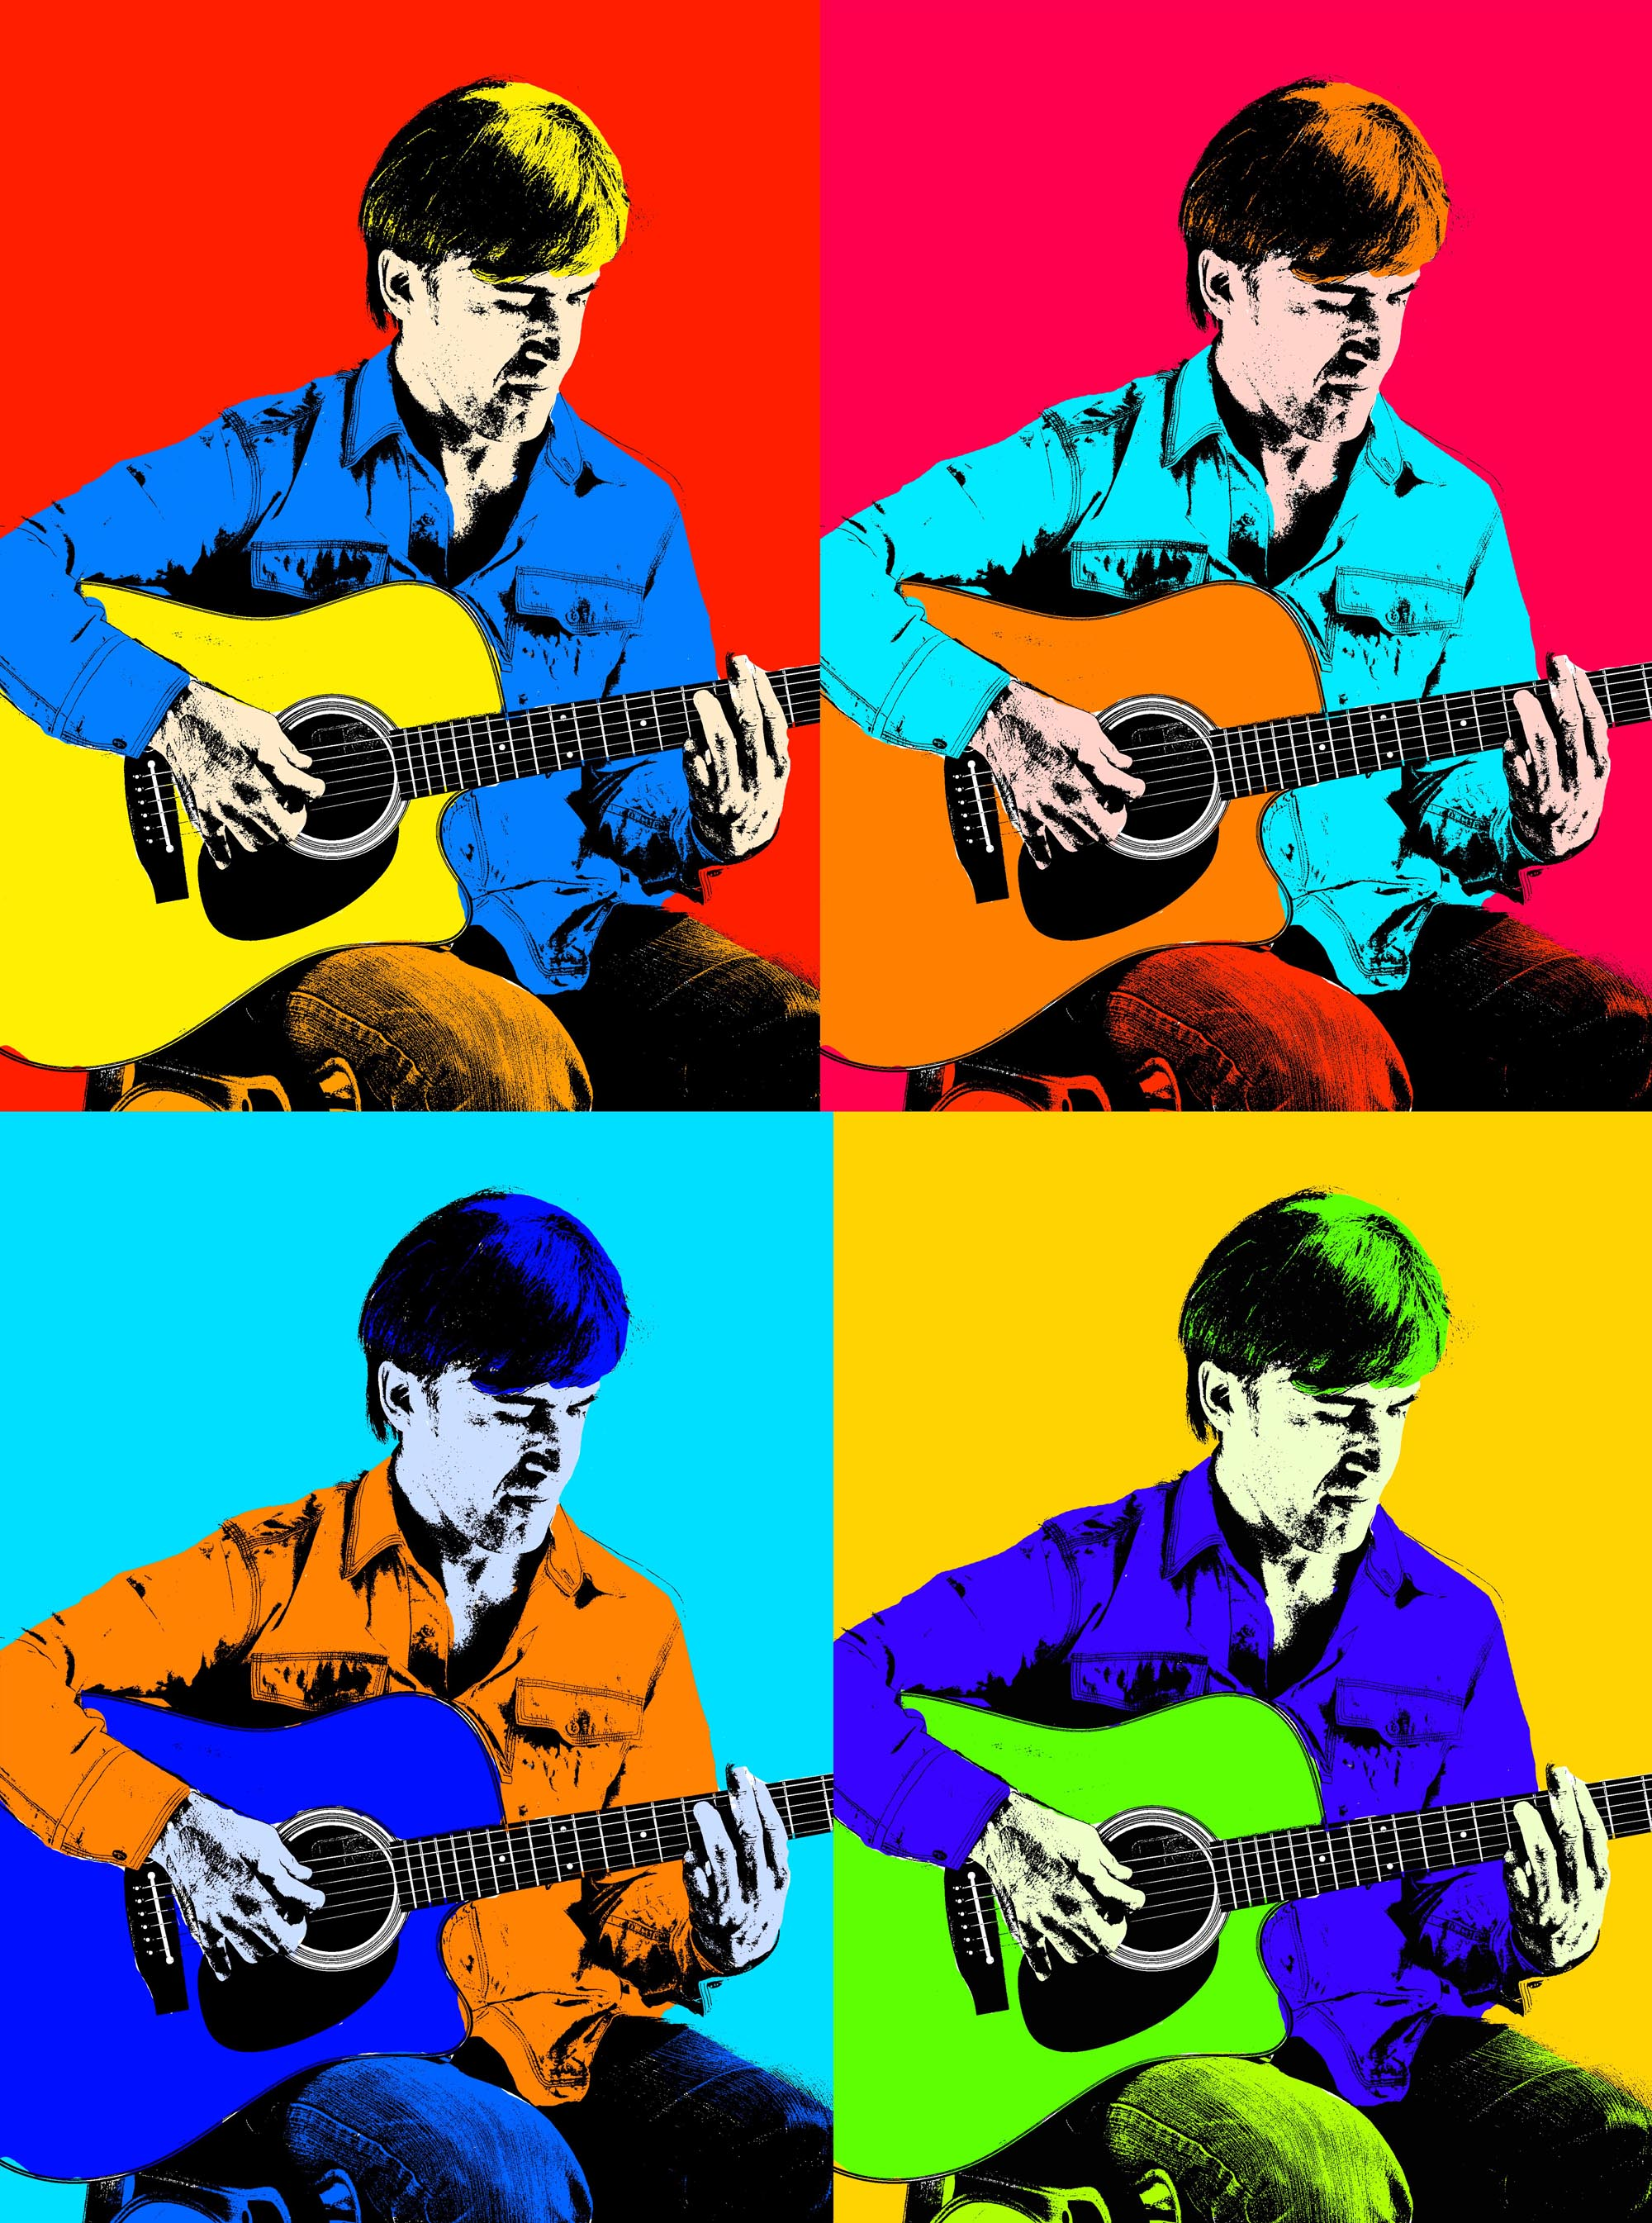 Learn how to create an Andy Warhol inspired picture in Photoshop.